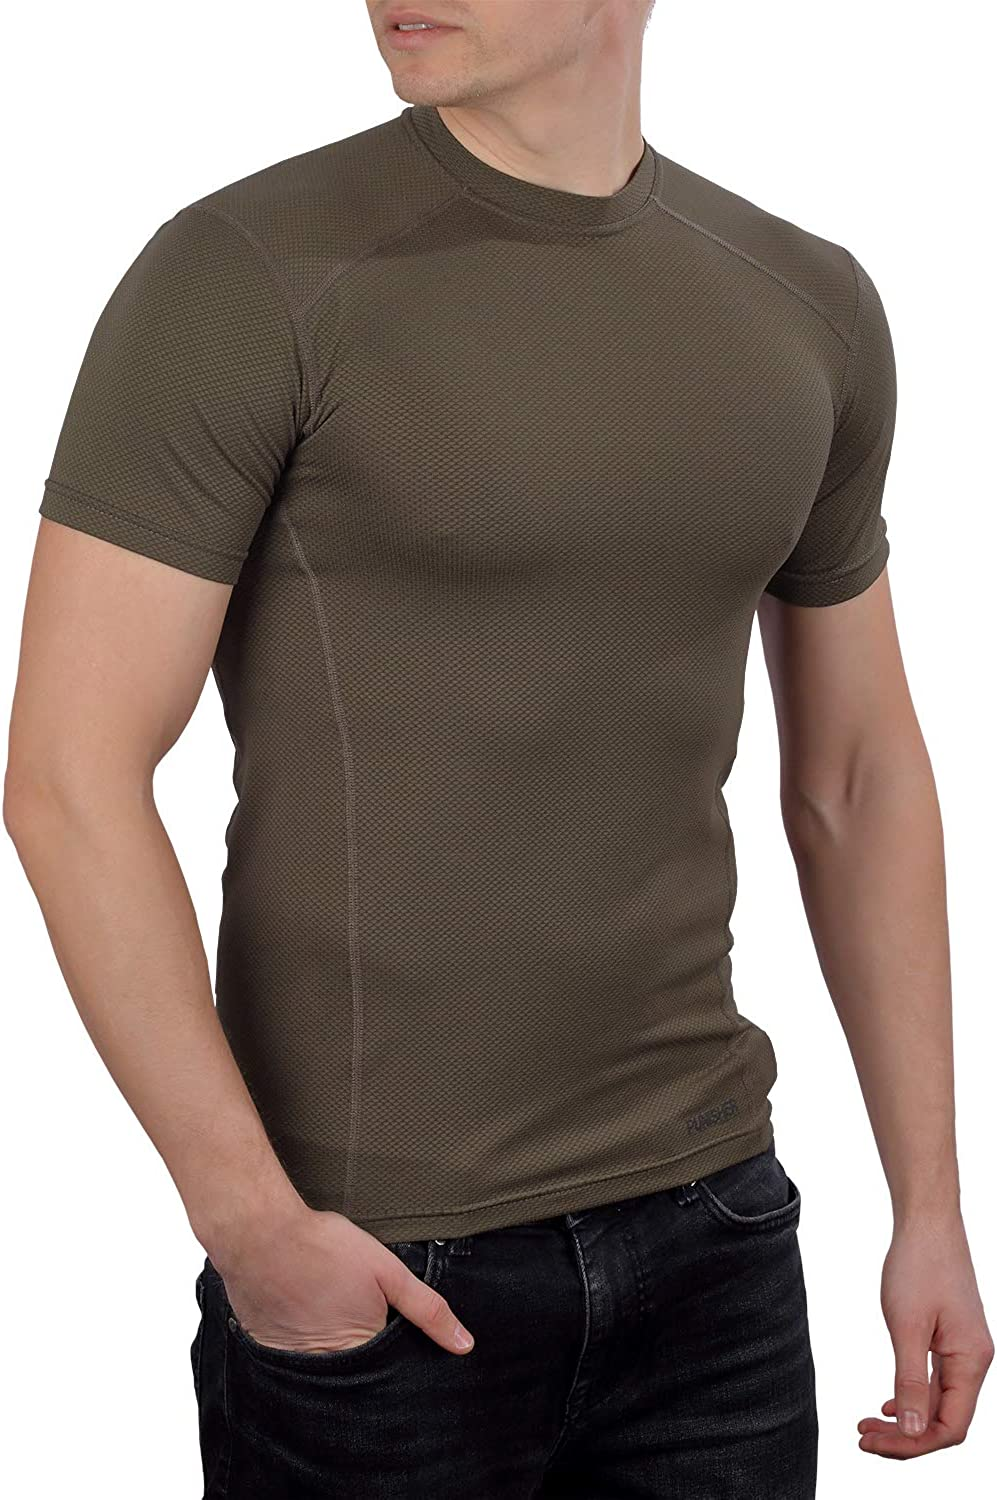 281Z Mens excellence Military Moisture Gorgeous Wicking T-Shirt Tactical Training -